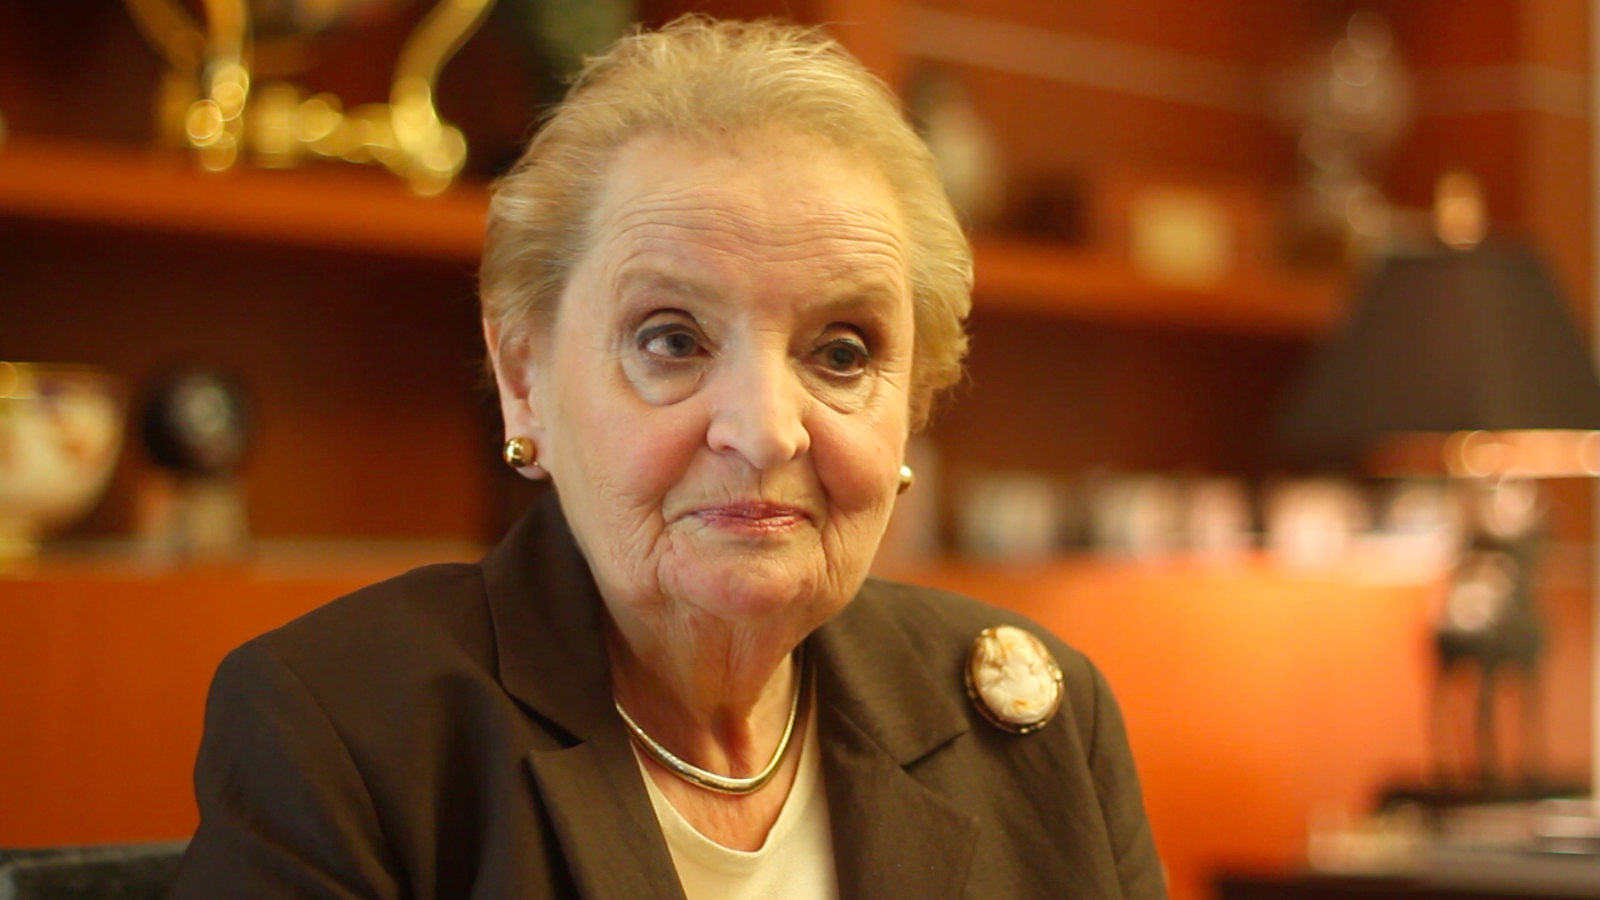 Pictures of madeleine albright Read My Pins: Stories from a Diplomat's Jewel Box